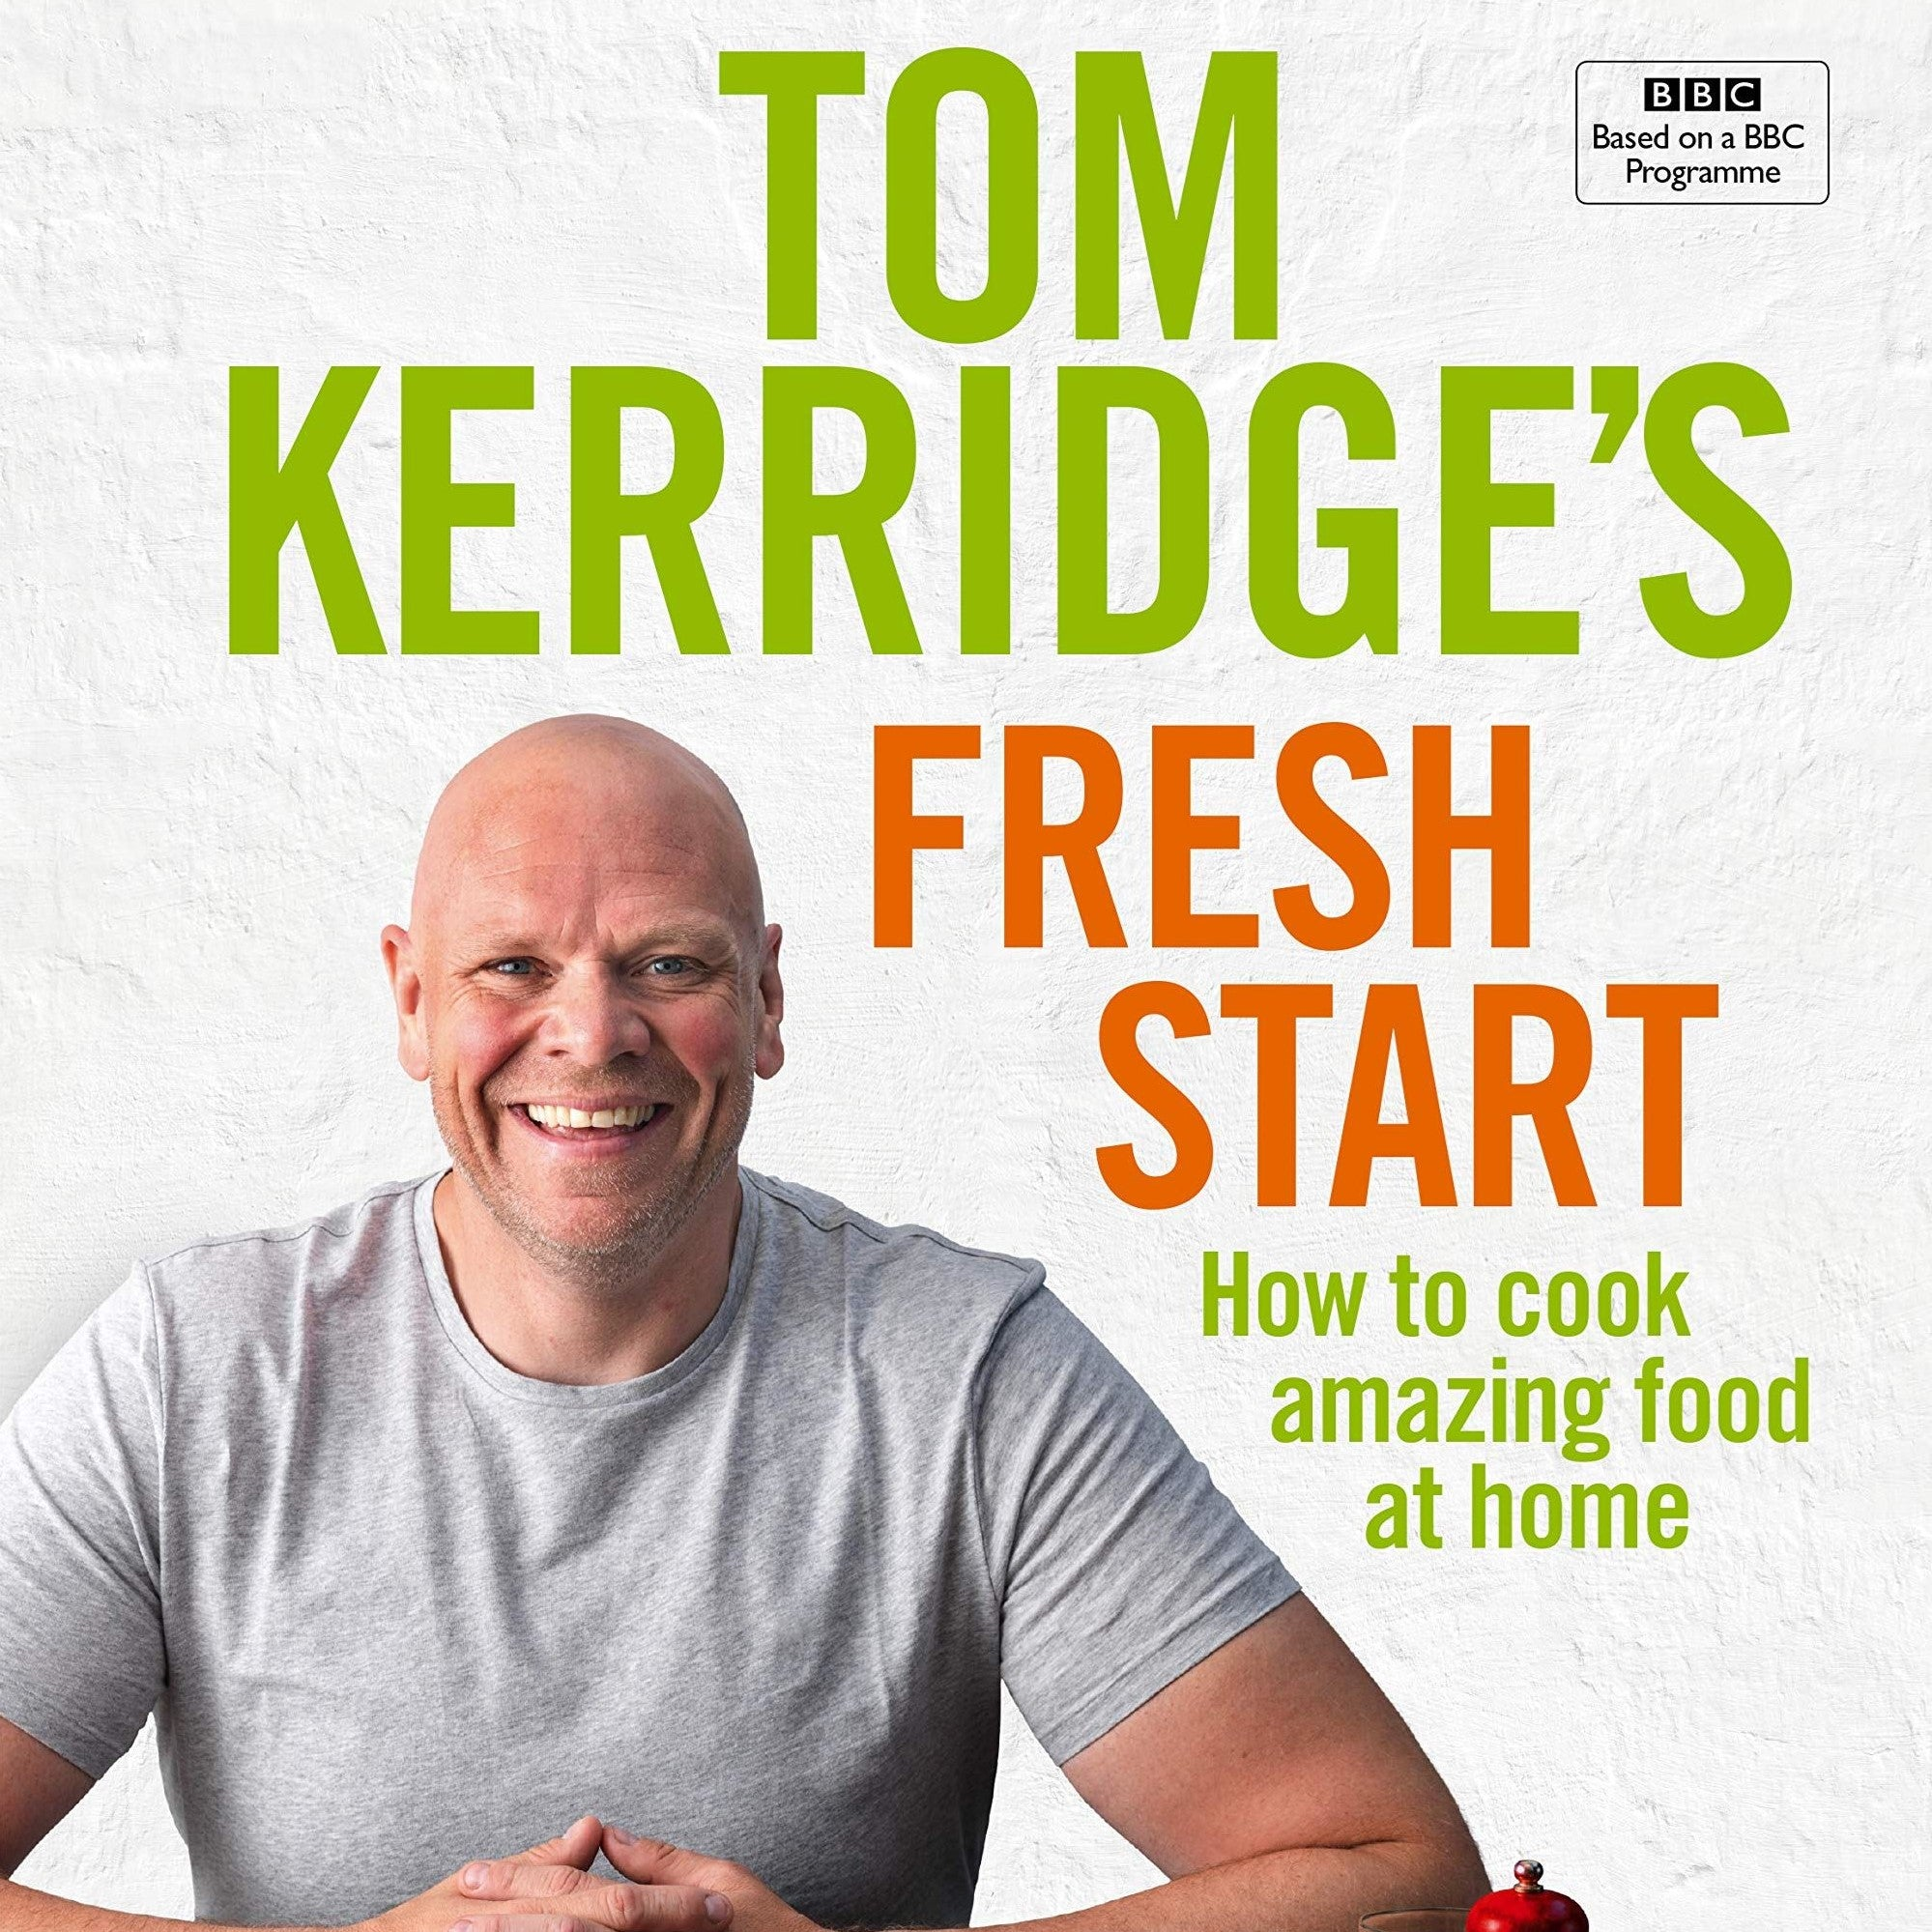 100 amazing healthy home-based meals from TV celebrity Tom Kerridge whose recent bestsellers include Lose Weight for Good and The Dopamine Diet. His dream is to promote home cooking, using ingredients from scratch rather than relying on processed meals and The featured recipes are still family-favourites, but are healthier than packaged or fast food versions - and much tastier too. Includes quick to make weeknight dinners, batch cooking to last across the week, and weekend feasts.